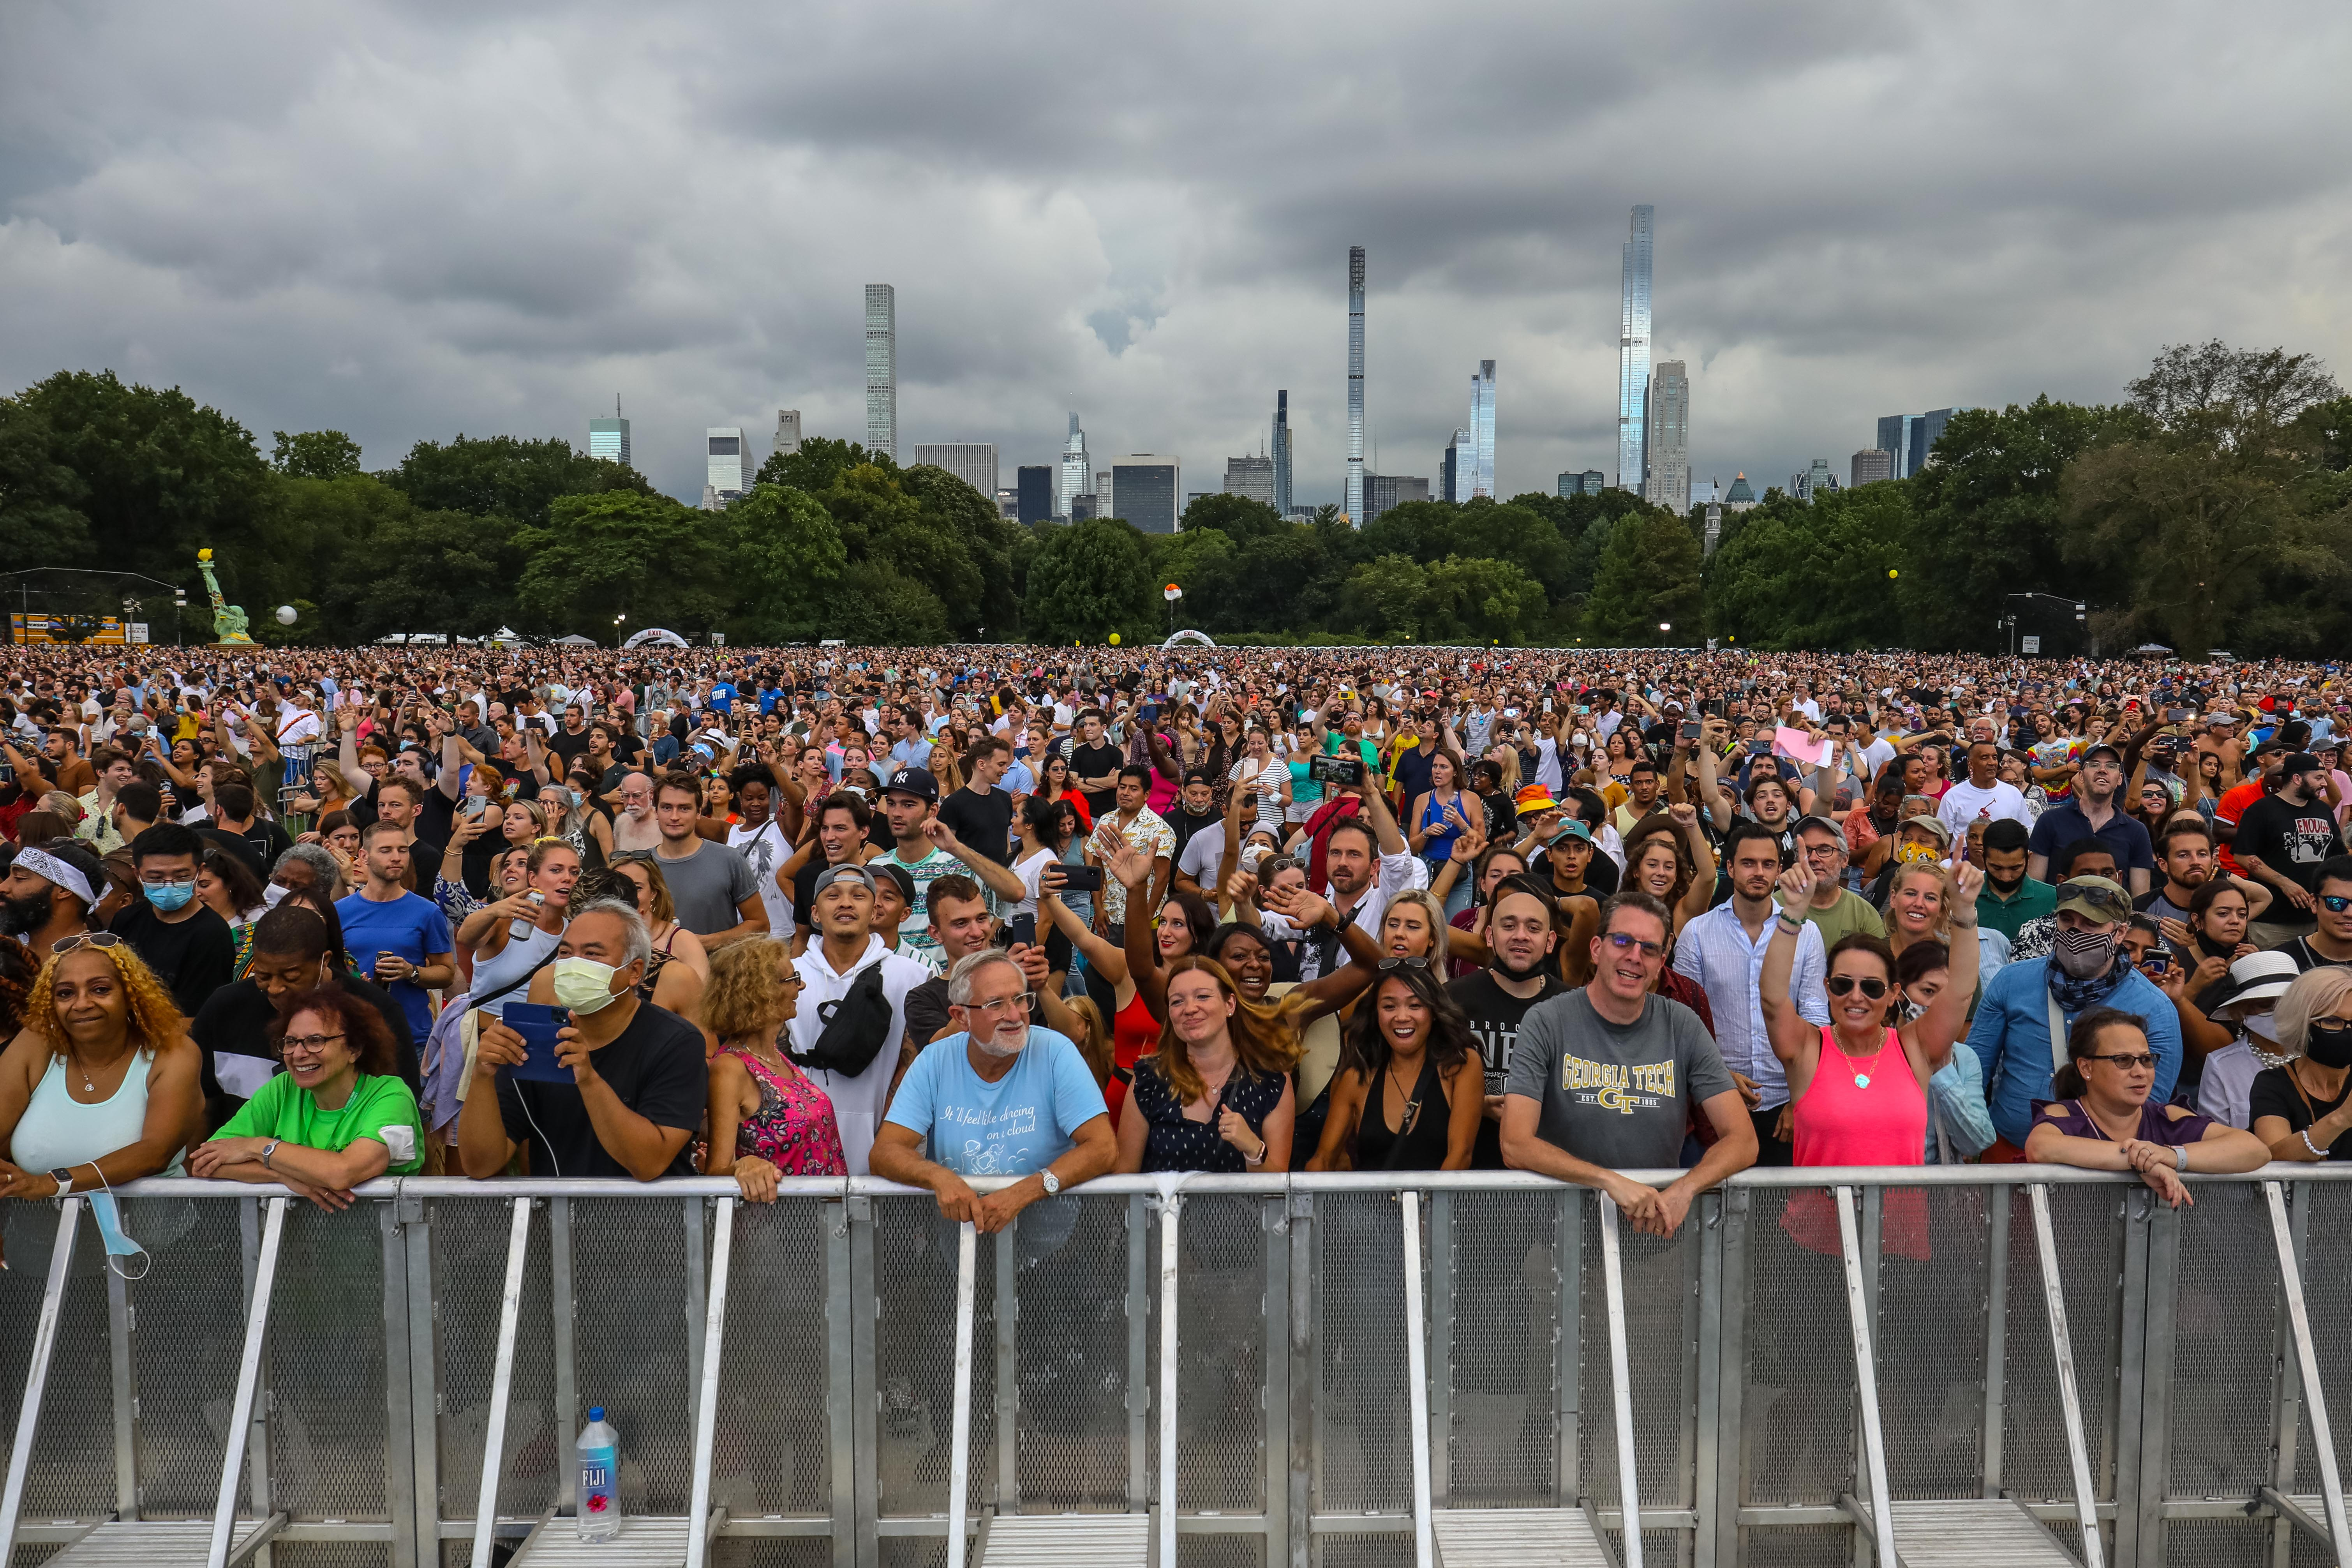 concert goers at the Homecoming concert in Central Park, before the storm